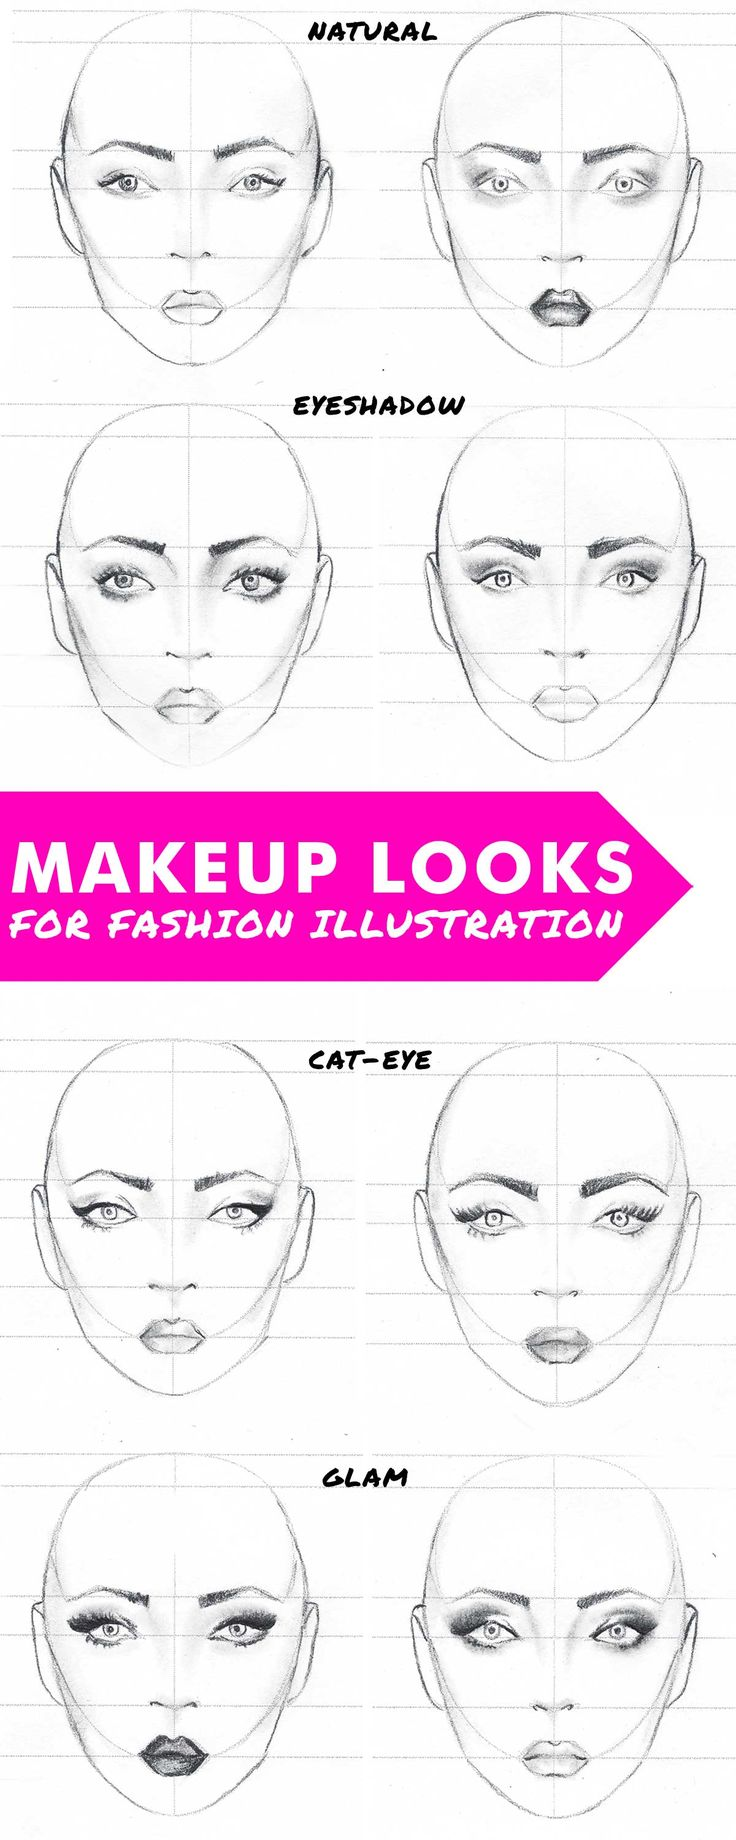 Makeup looks for fashion illustration. Free template for drawing the face on the fashion figure. Step-by-step guide on how to draw the face.